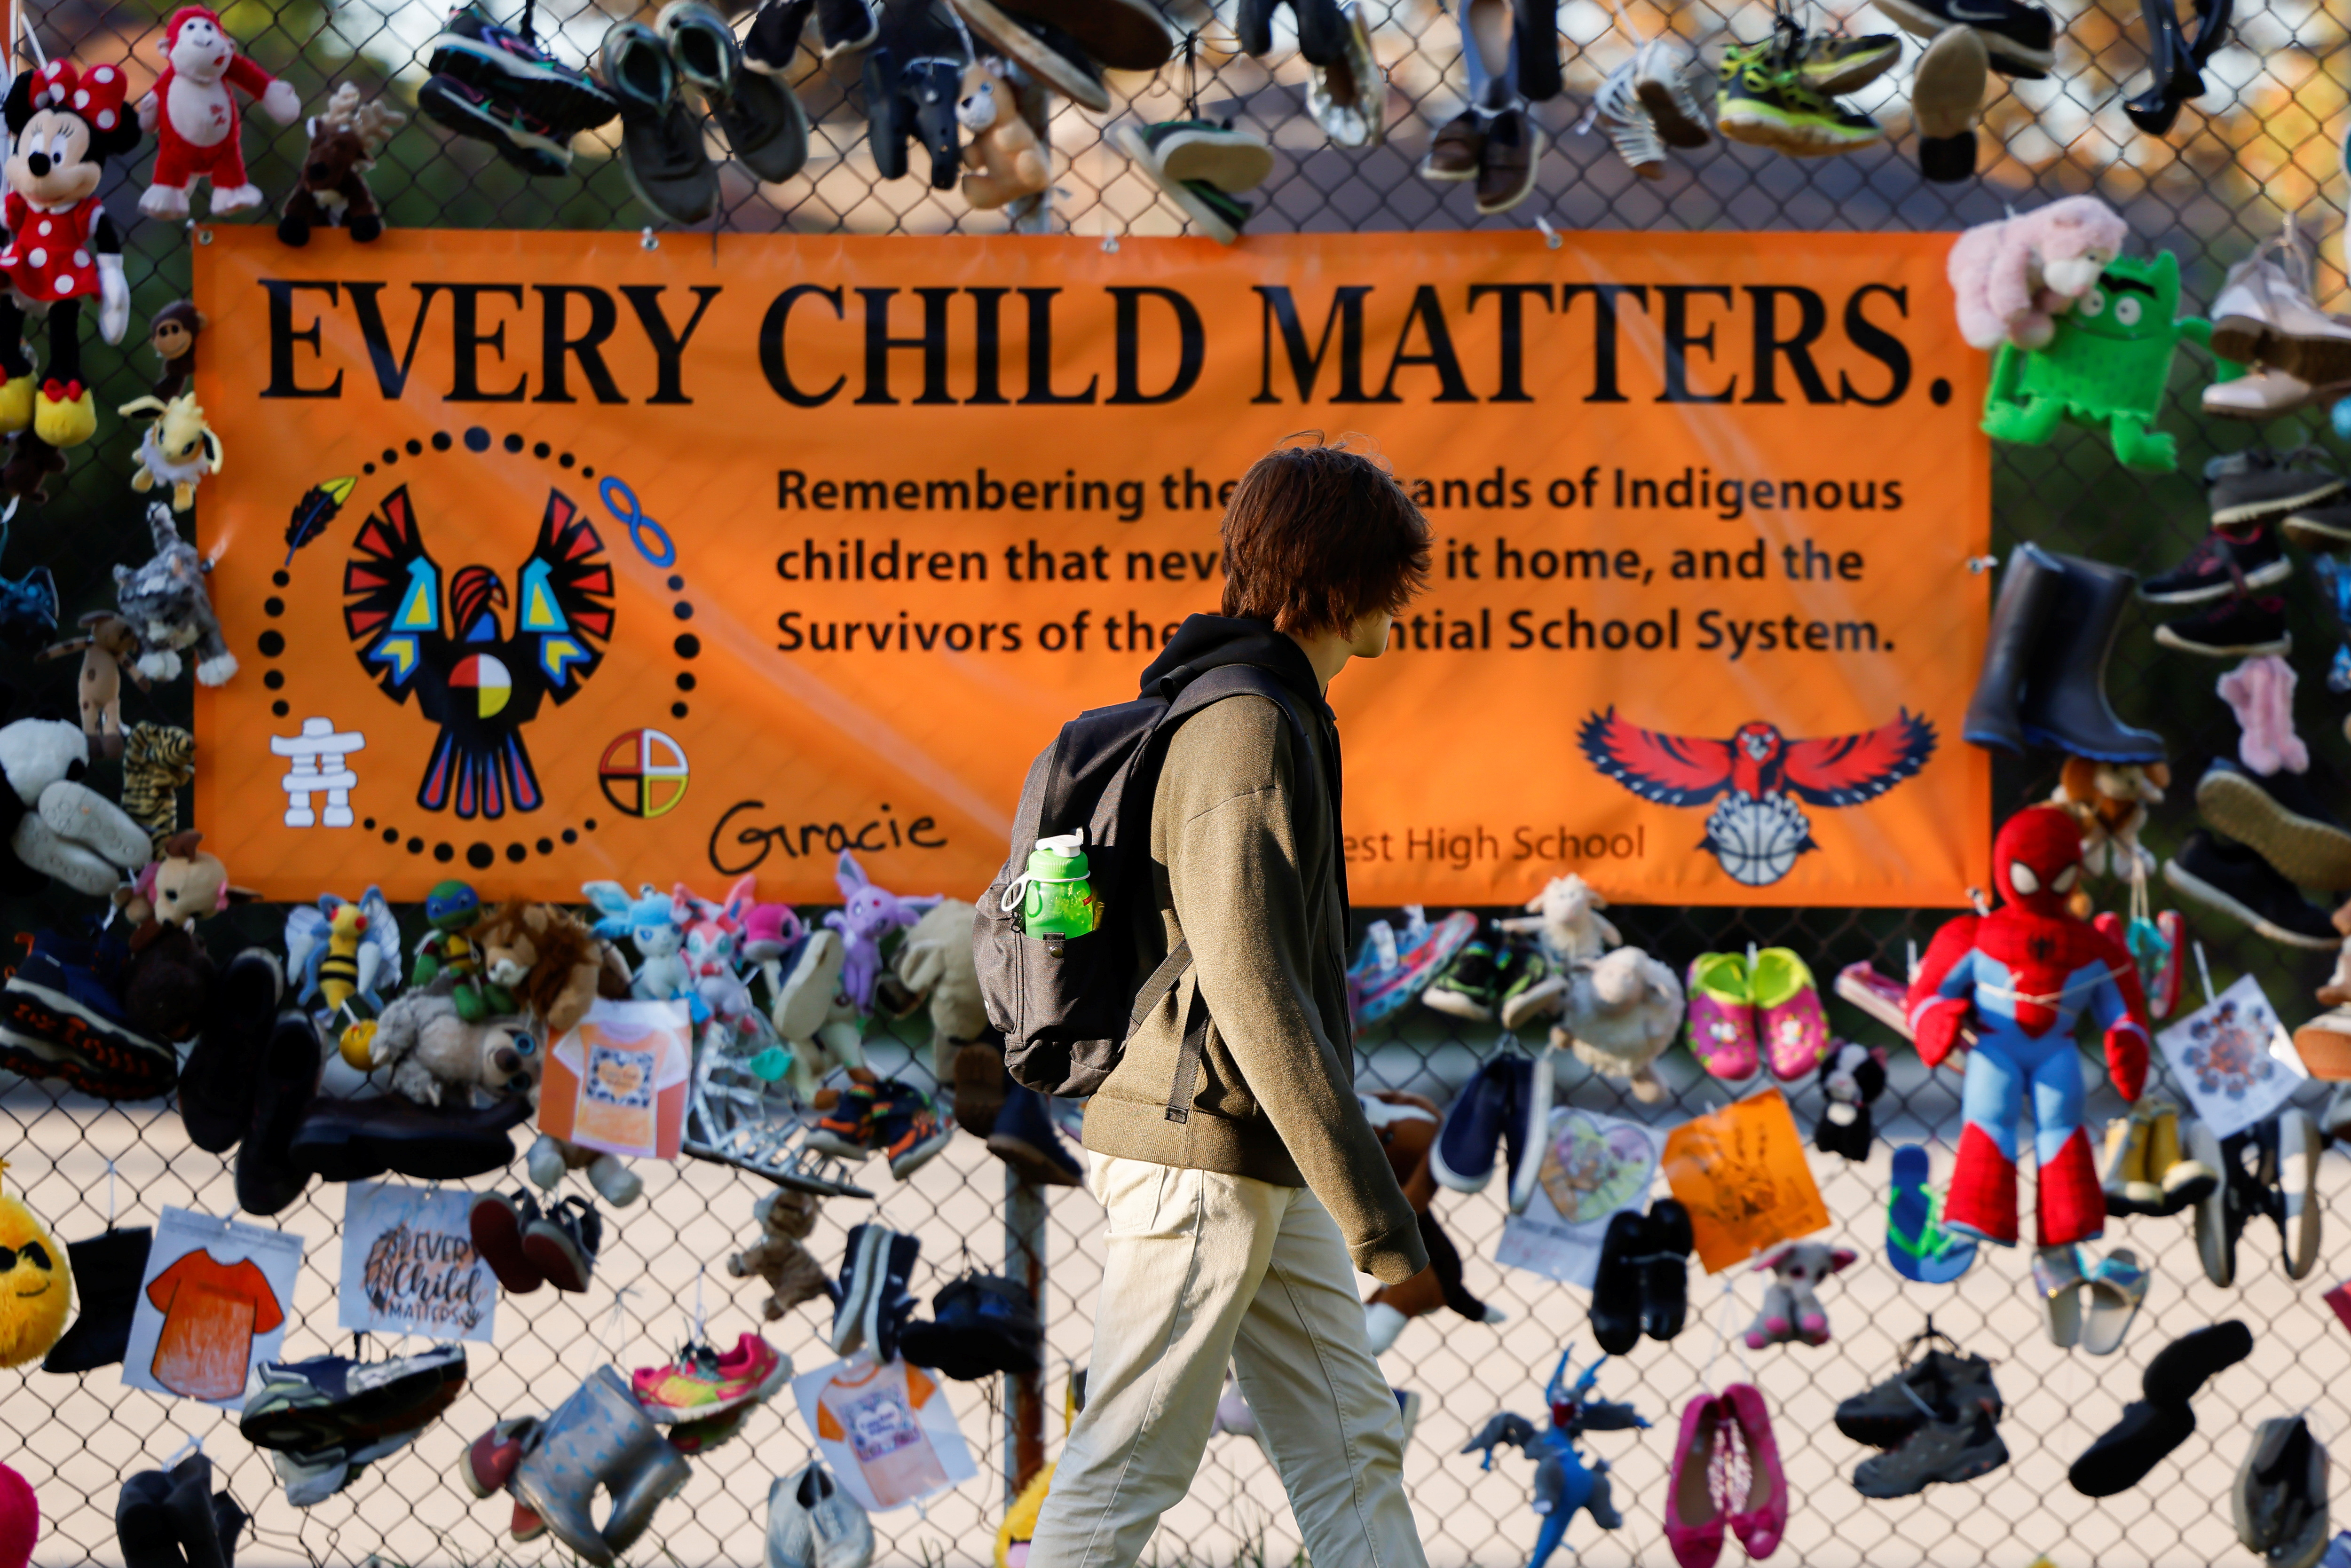 A student walks past a display at Hillcrest High School on Canada's first National Day for Truth and Reconciliation, honouring the lost children and survivors of Indigenous residential schools, their families and communities, in Ottawa, Ontario, Canada September 30, 2021. REUTERS/Blair Gable